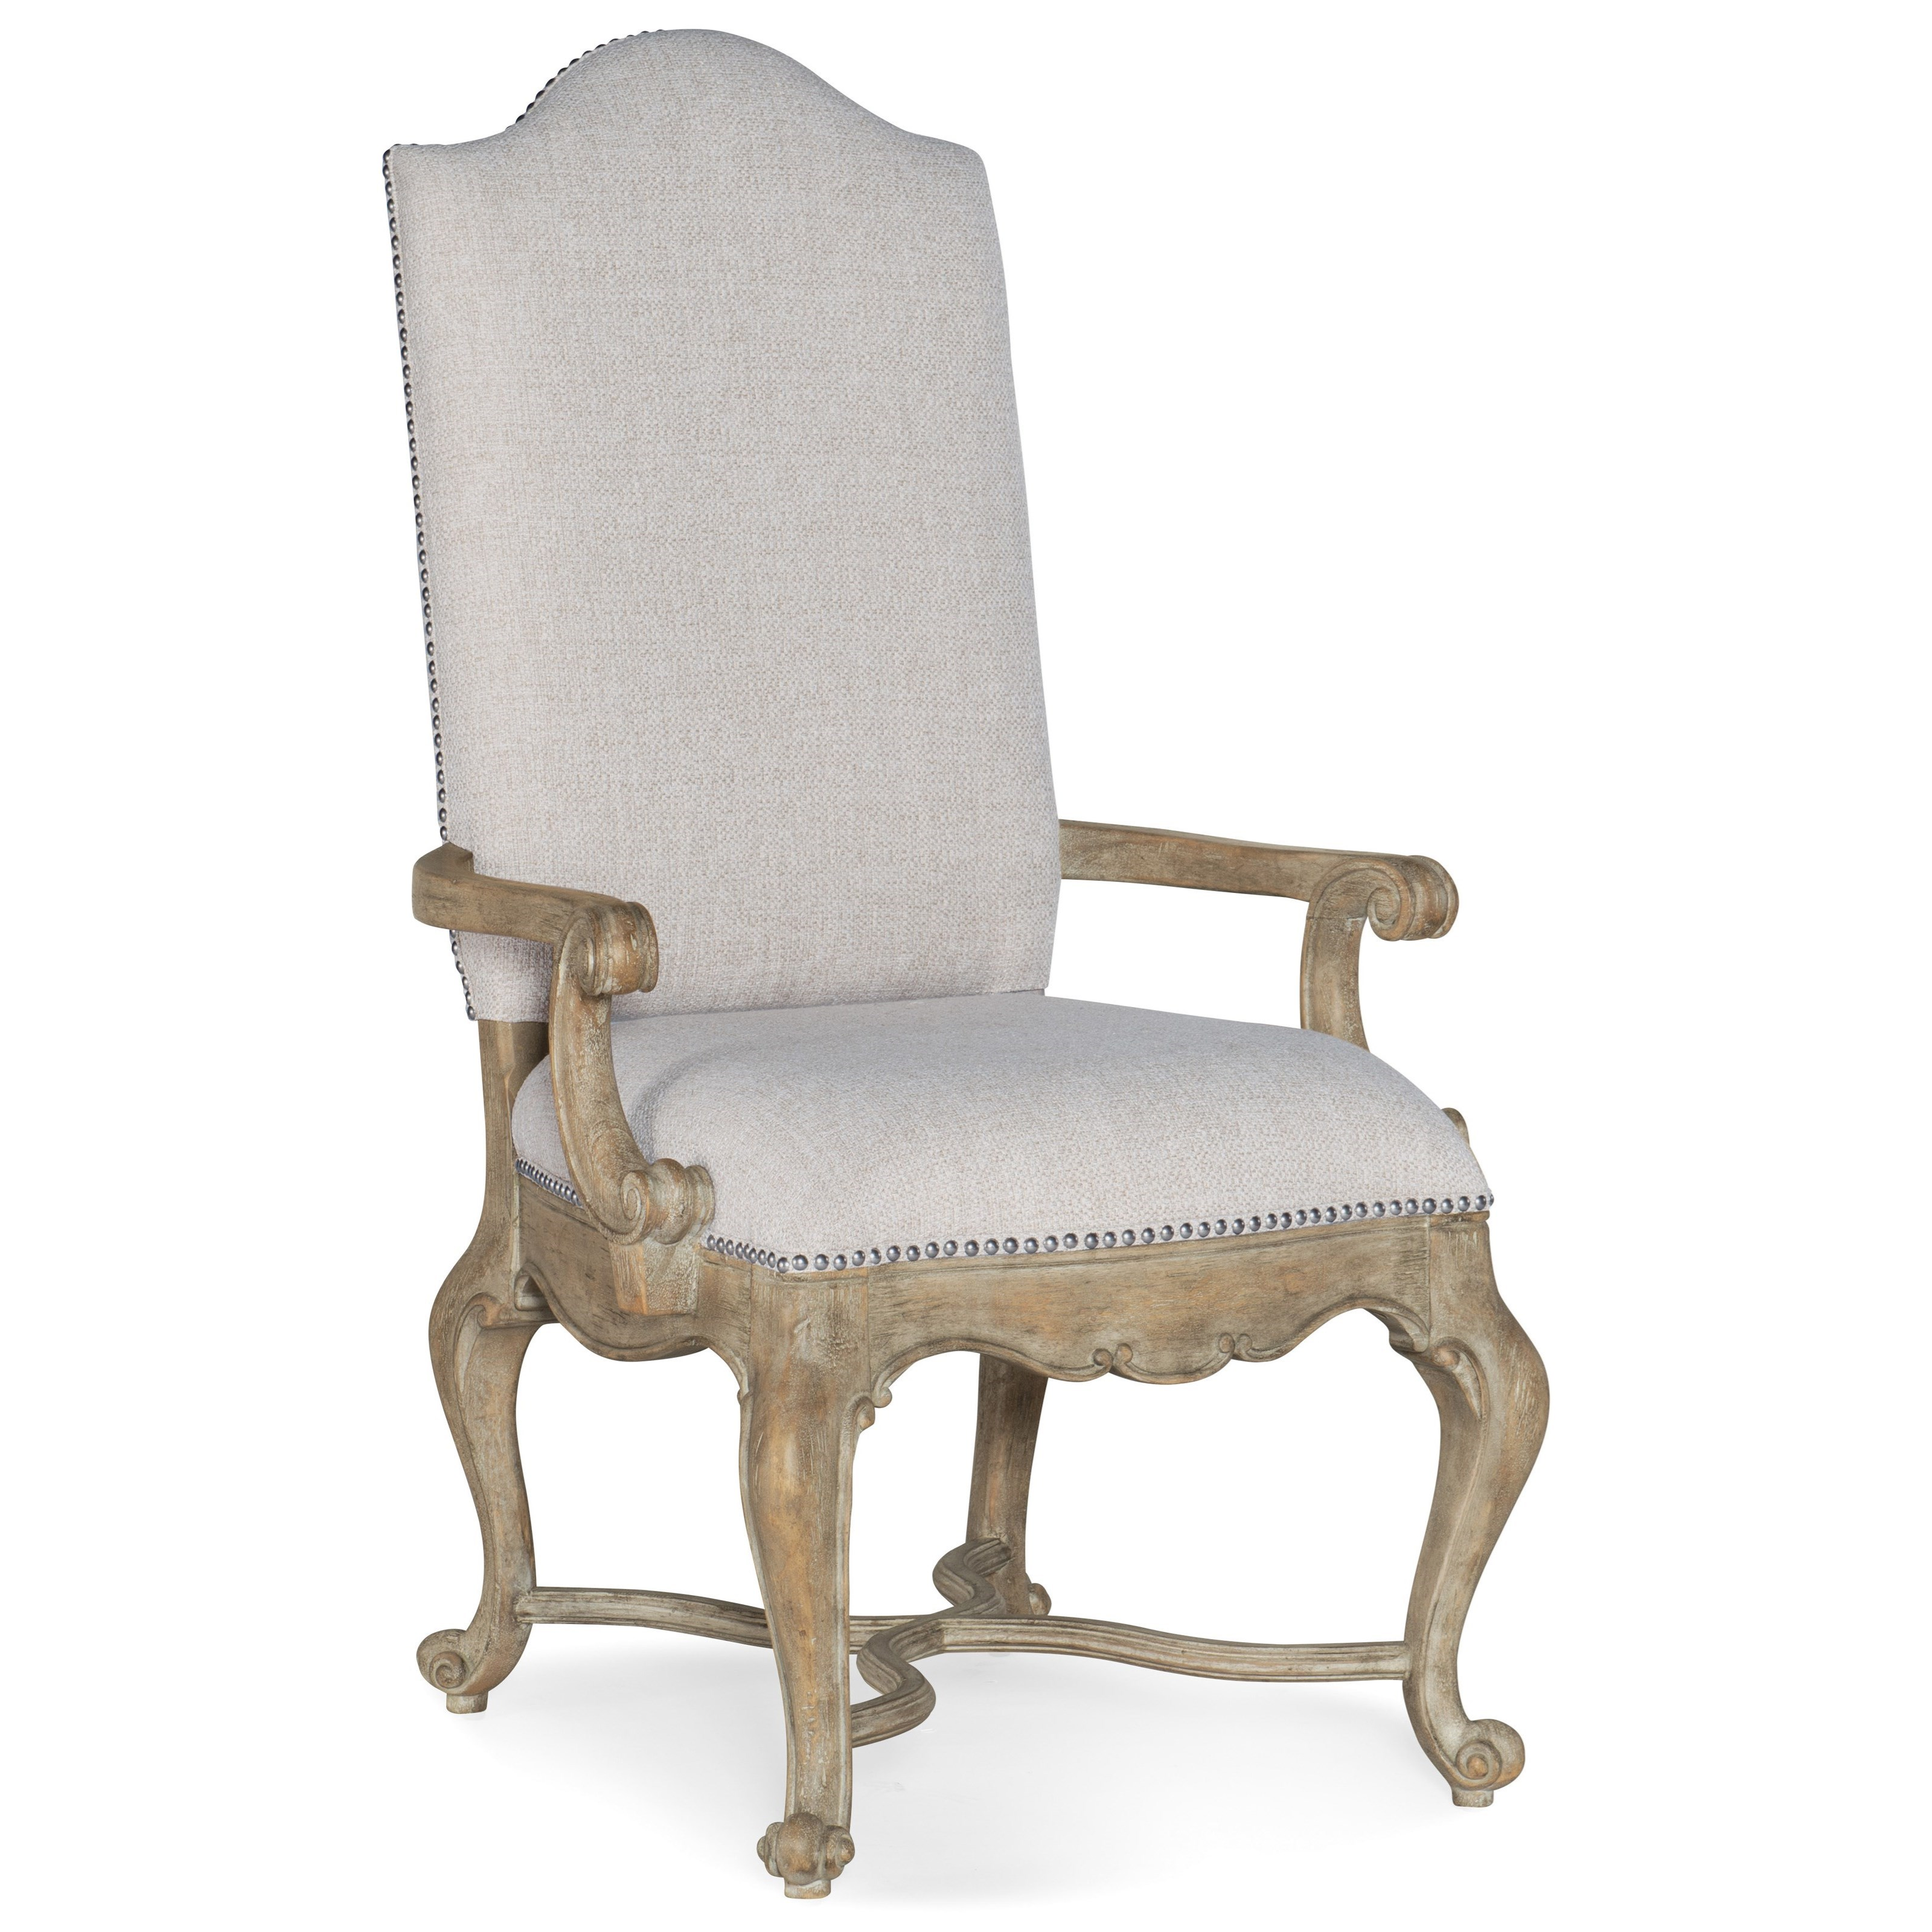 Castella Upholstered Arm Chair by Hooker Furniture at Stoney Creek Furniture